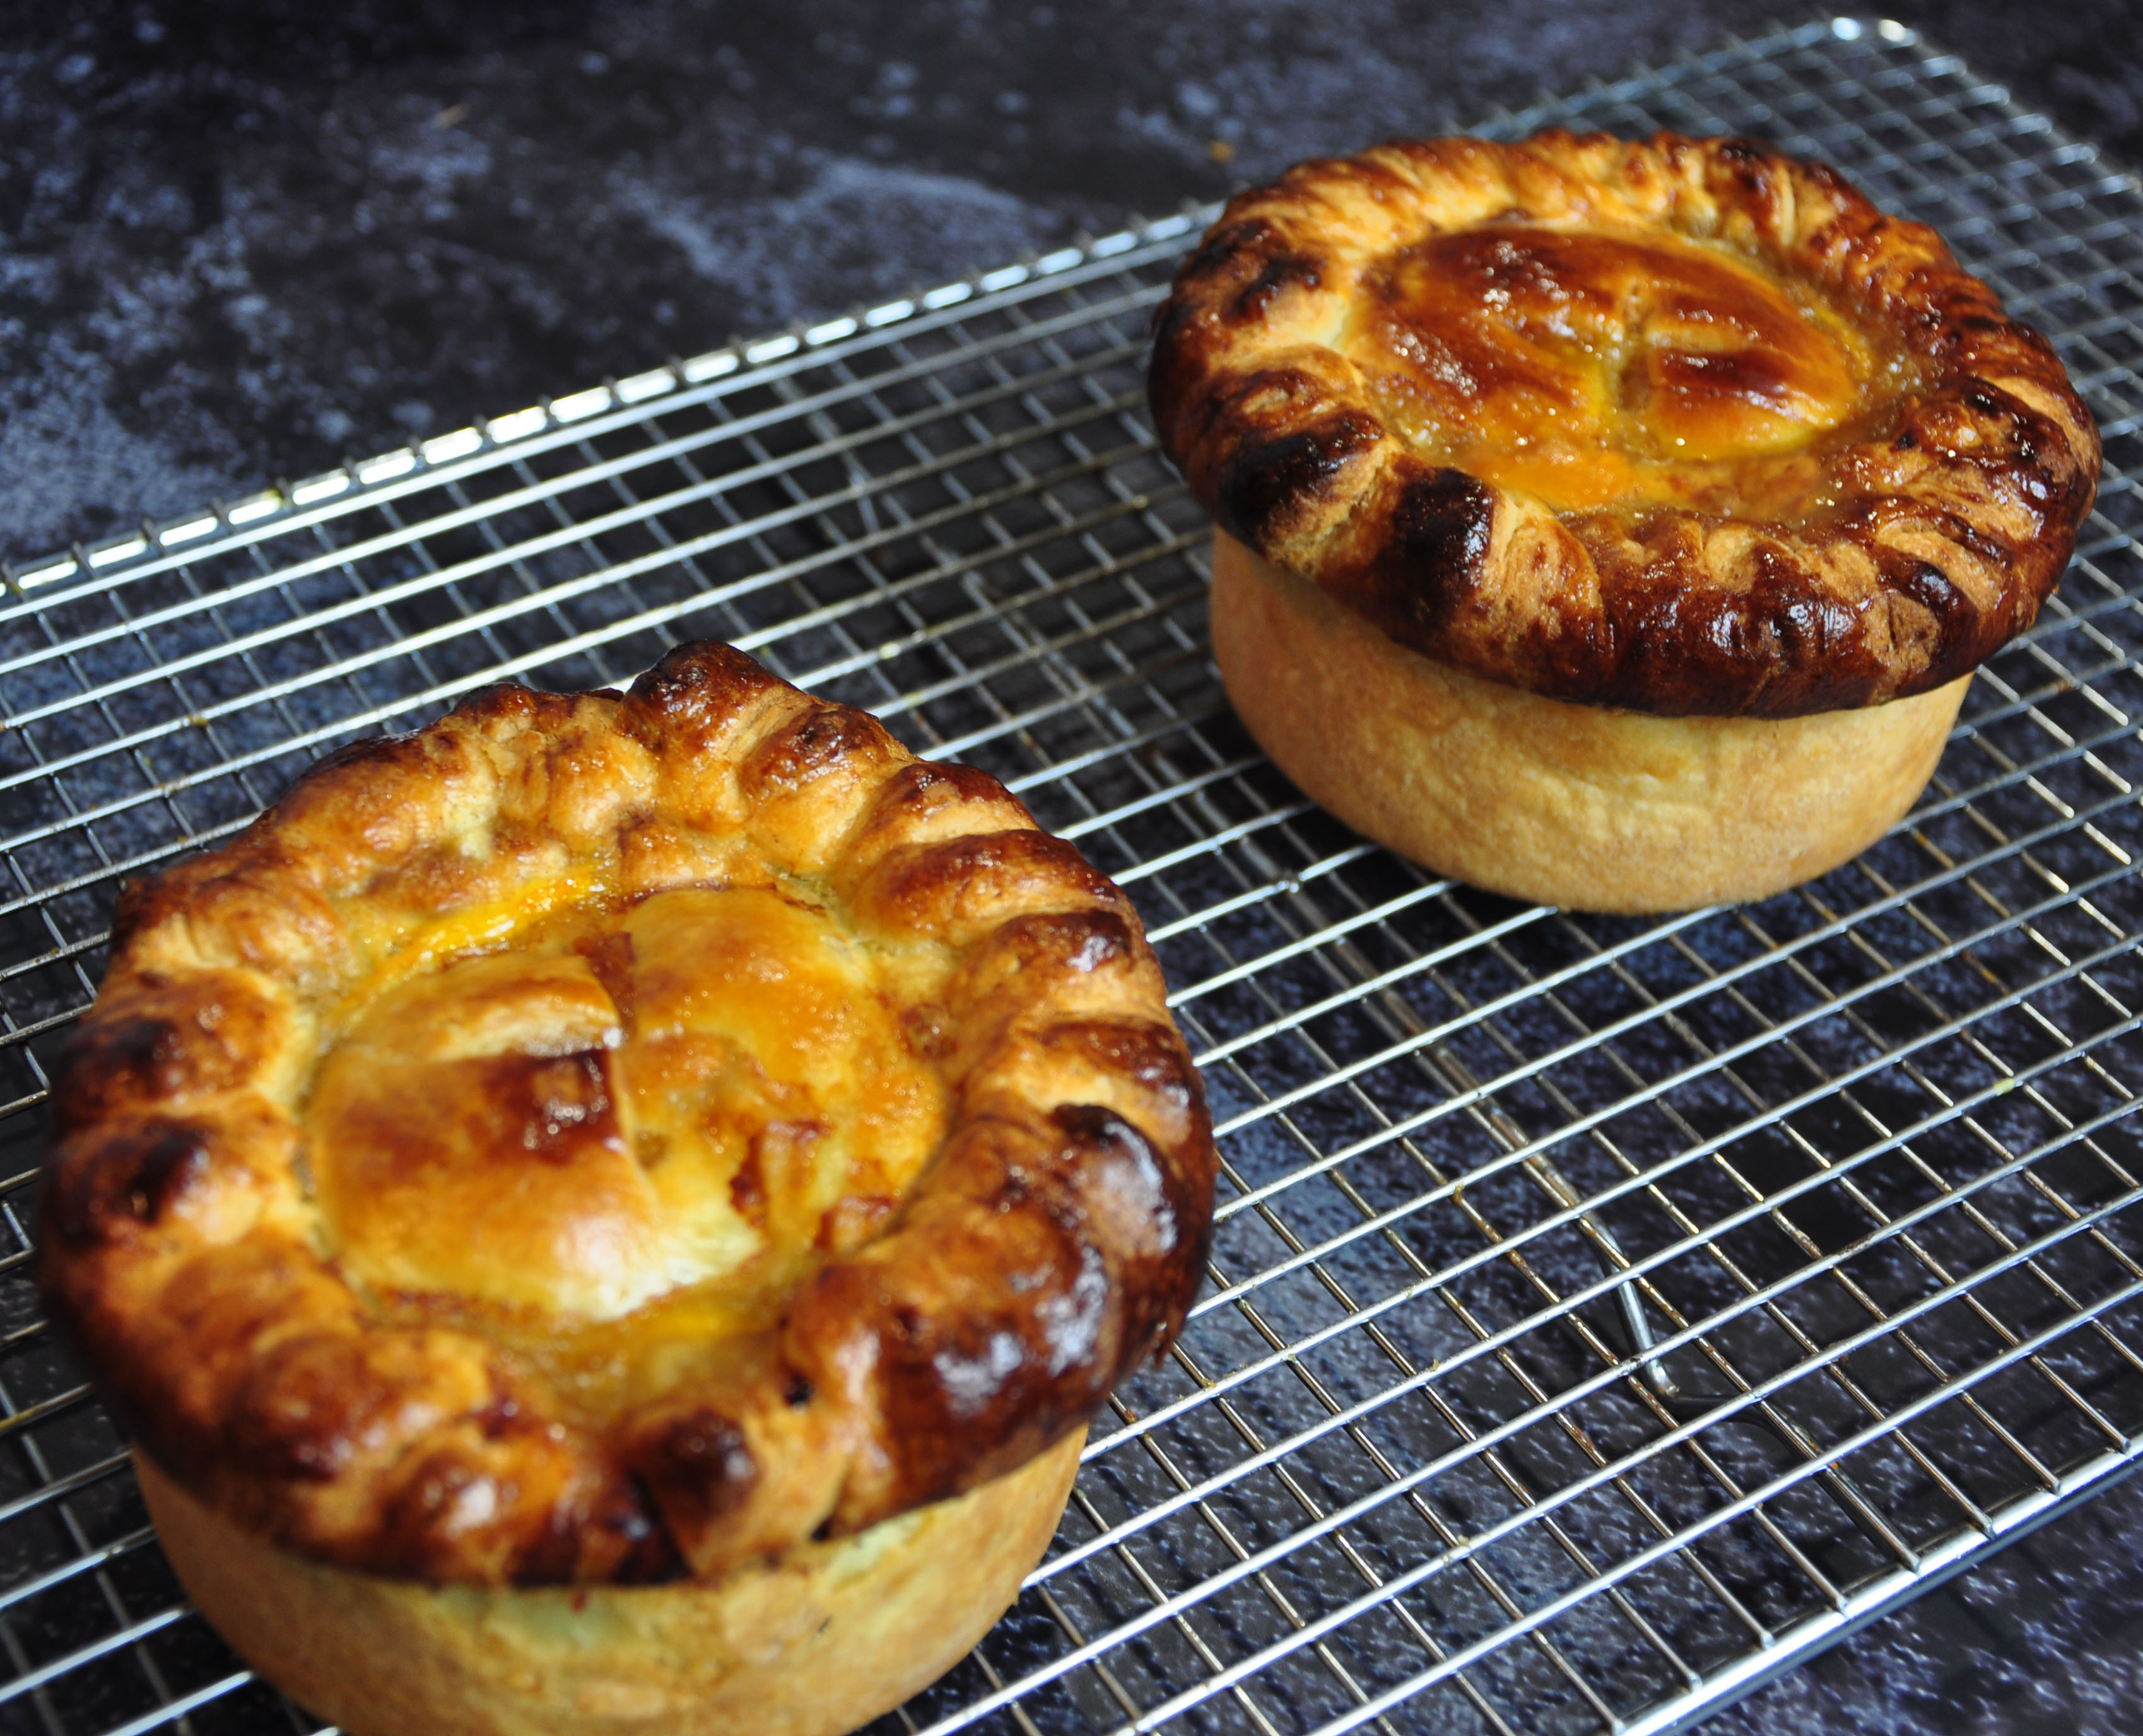 Bouef b pies fresh from the oven on a cake cooling rack